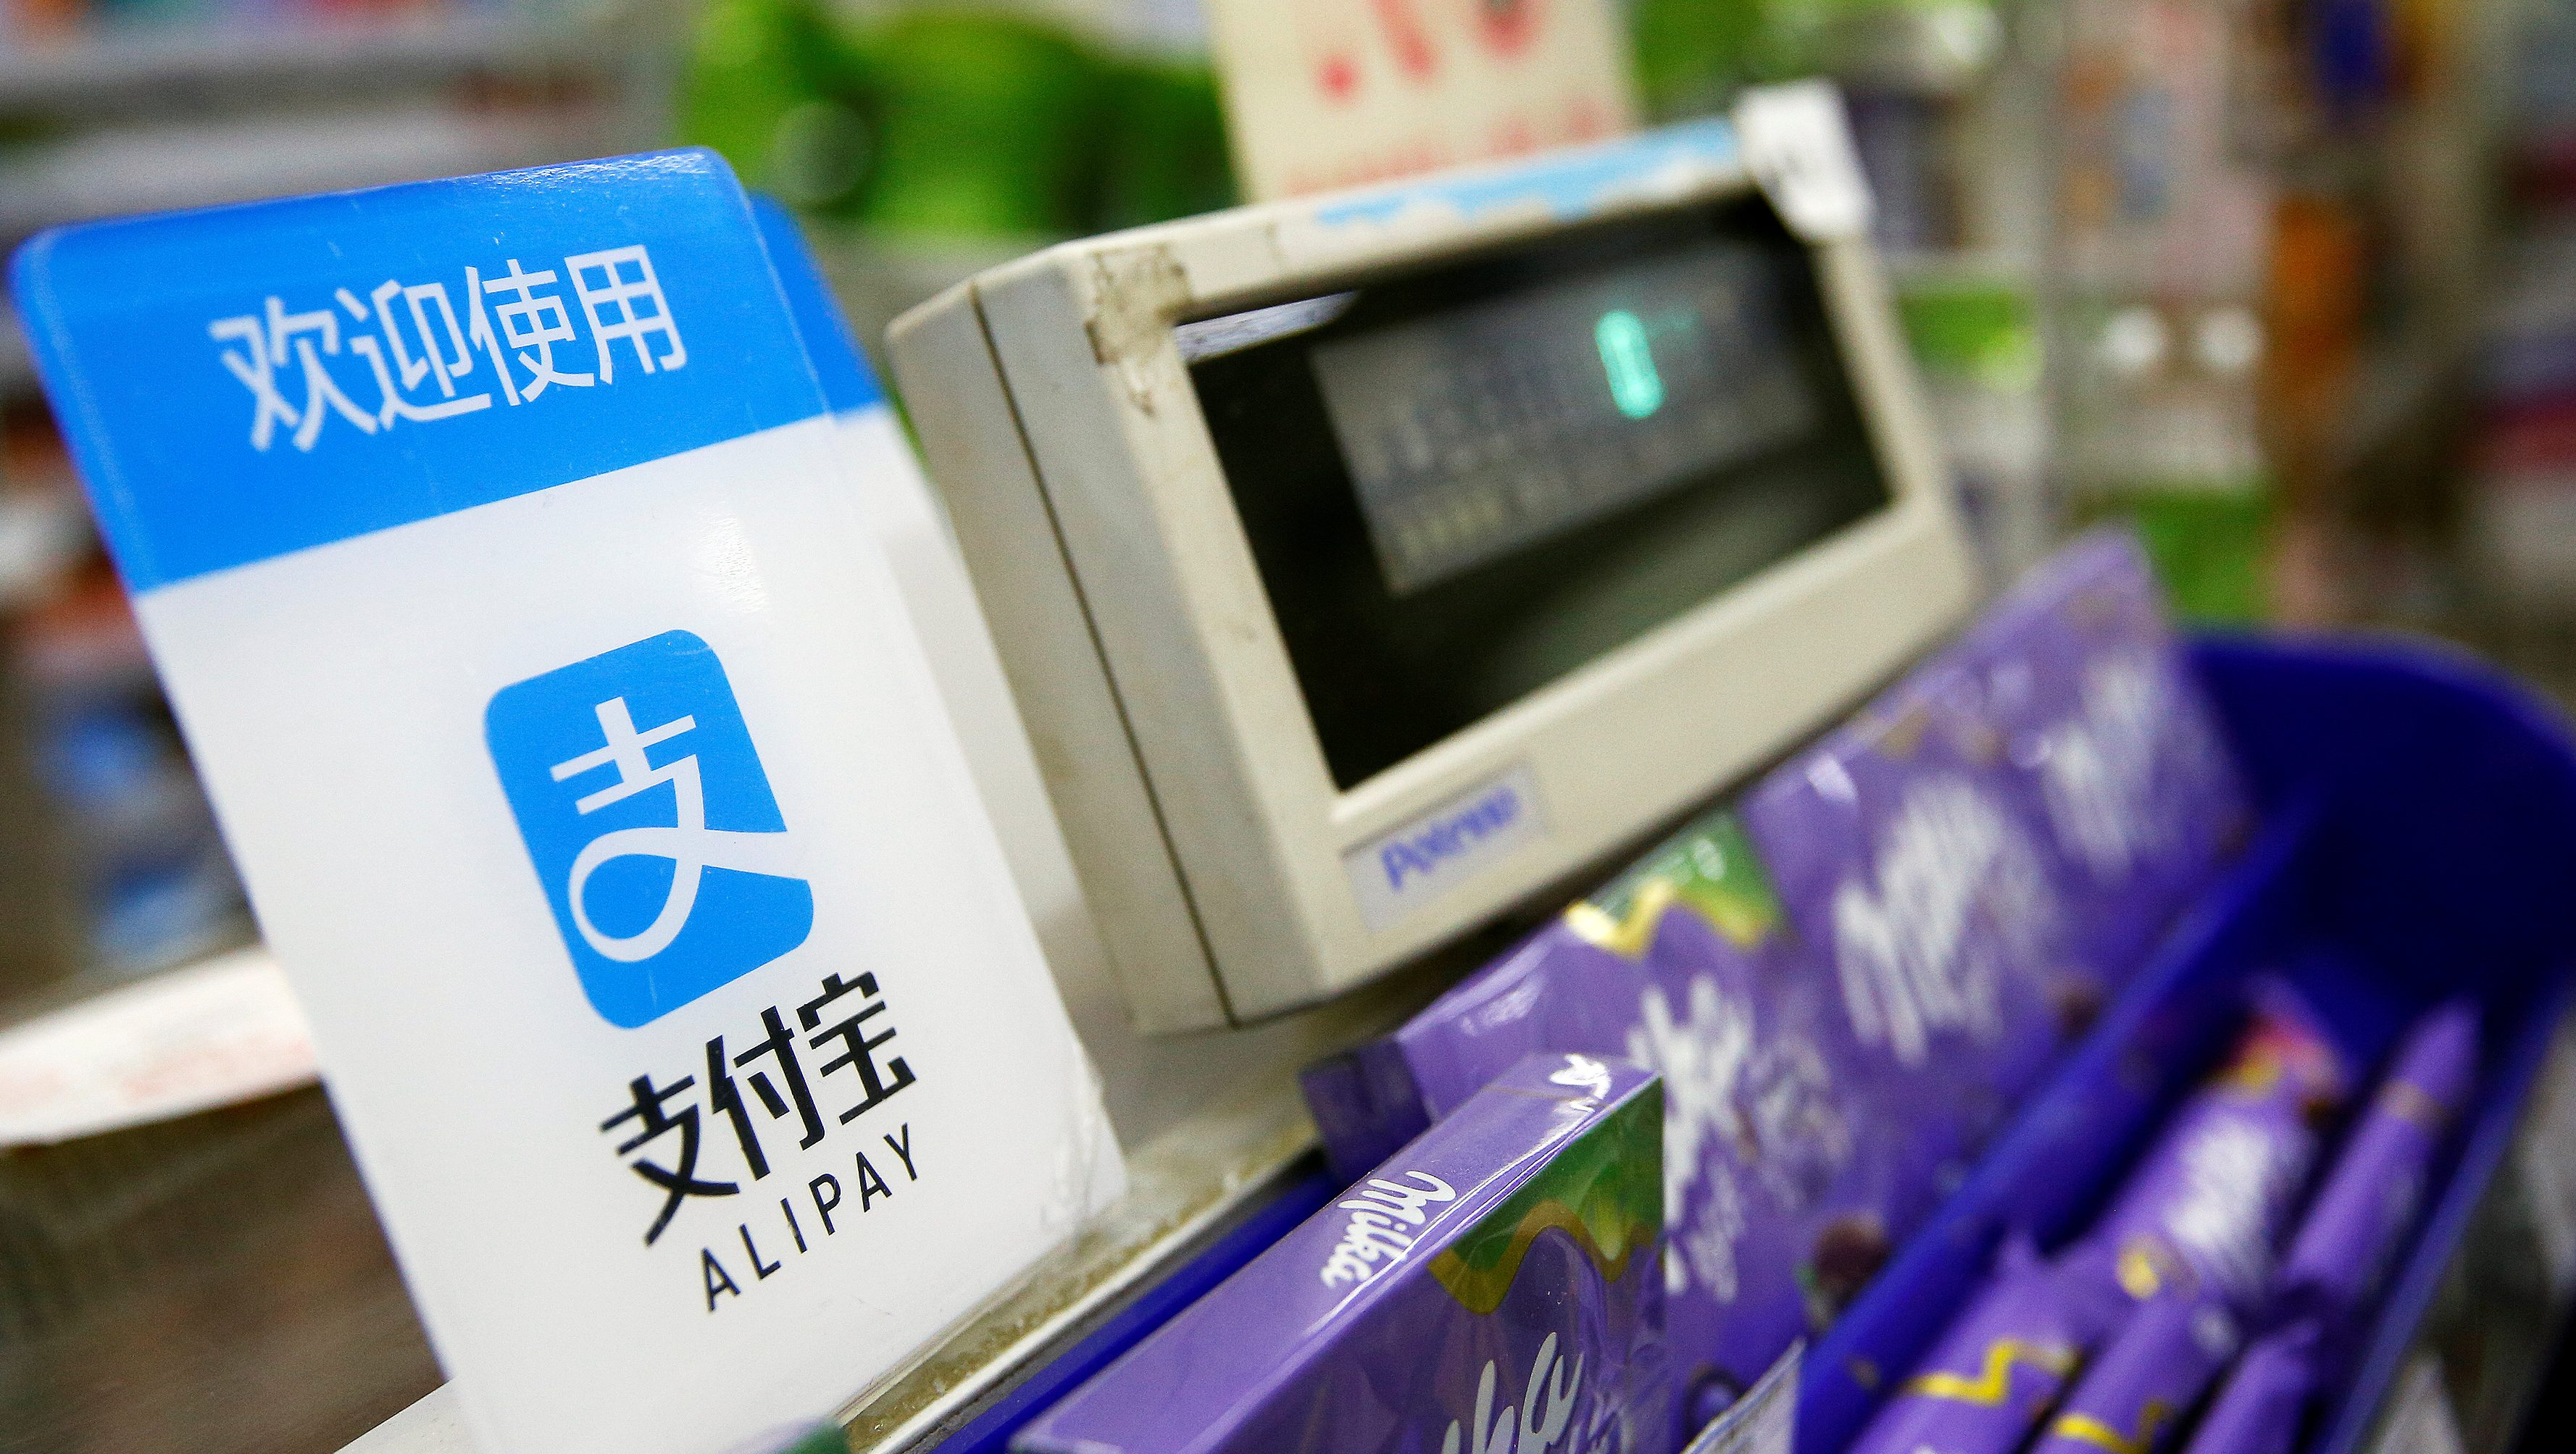 An Alipay logo is seen at a cashier in Shanghai January 12, 2017. This logo has been updated and is no longer in use. REUTERS/Ali Song - RTSVO7P